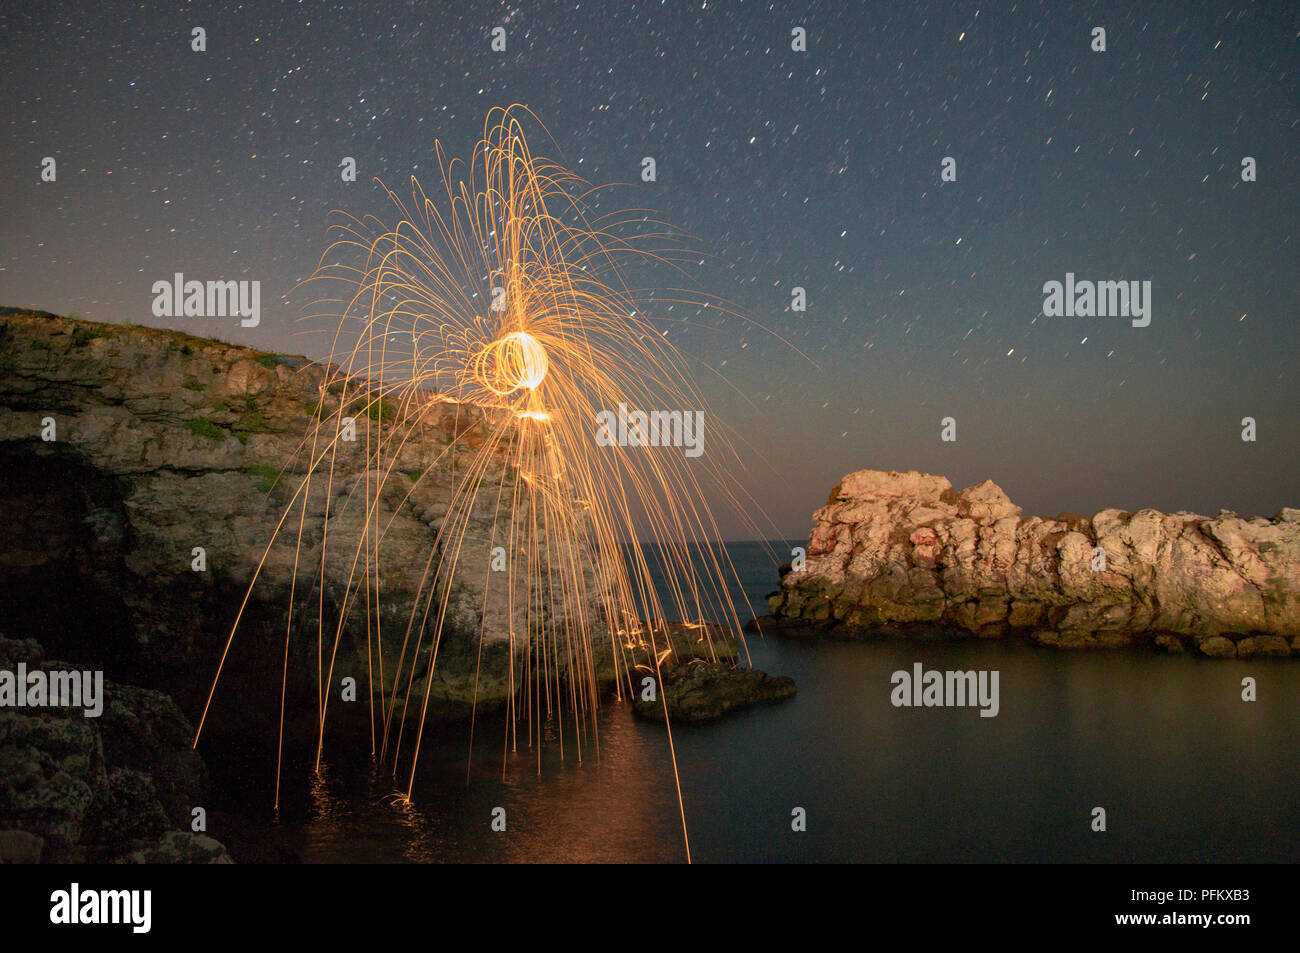 SPINNING STEEL WOOL FIREWORKS OVER THE ROCKS AND SEA Stock Photo